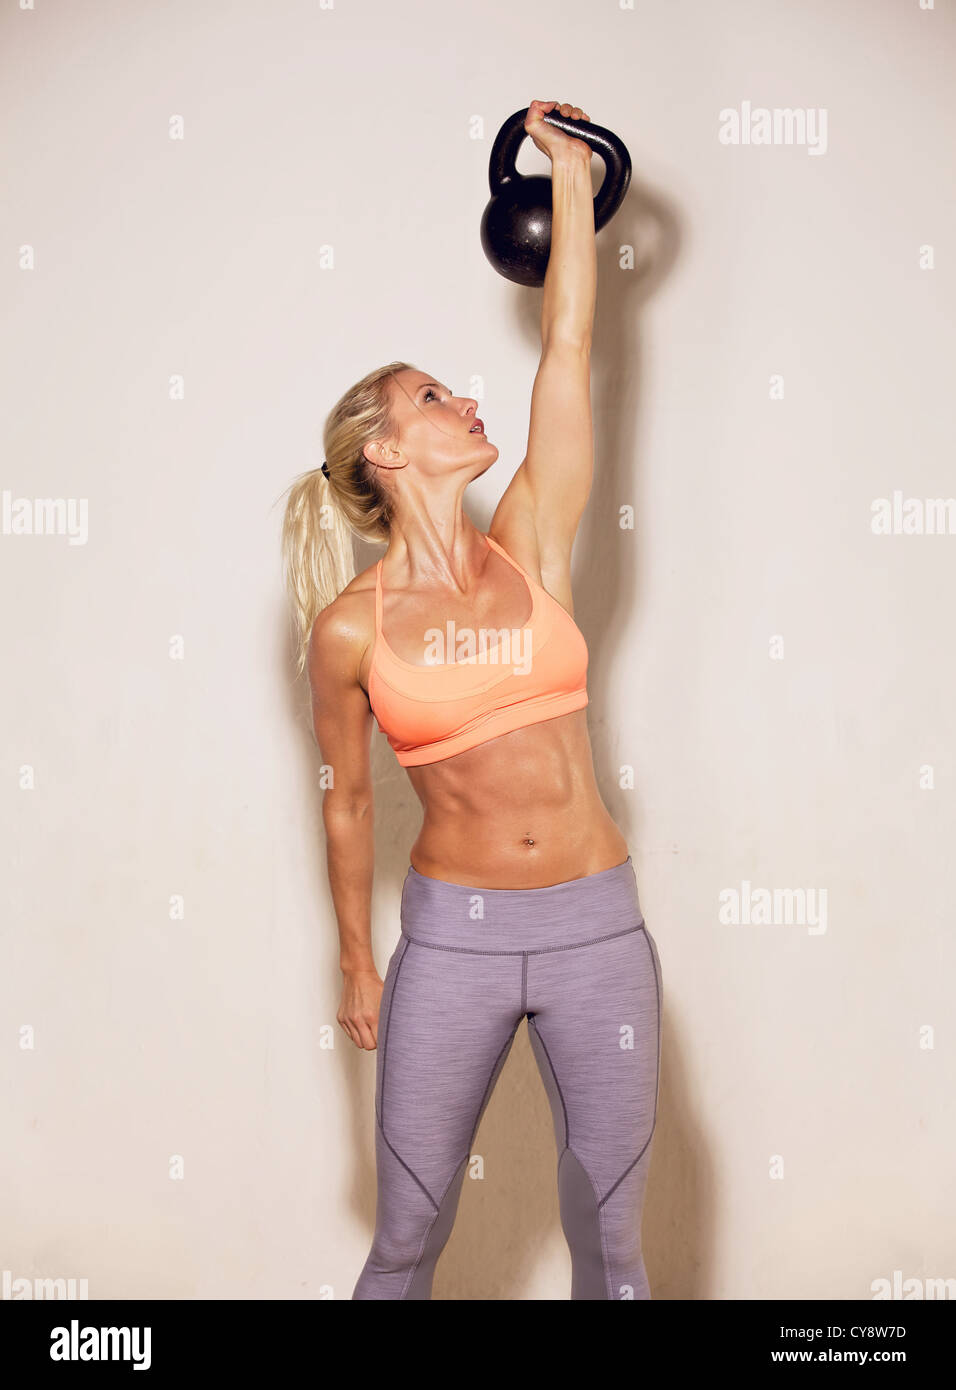 Strong woman lifting a kettlebell with only one hand - Stock Image